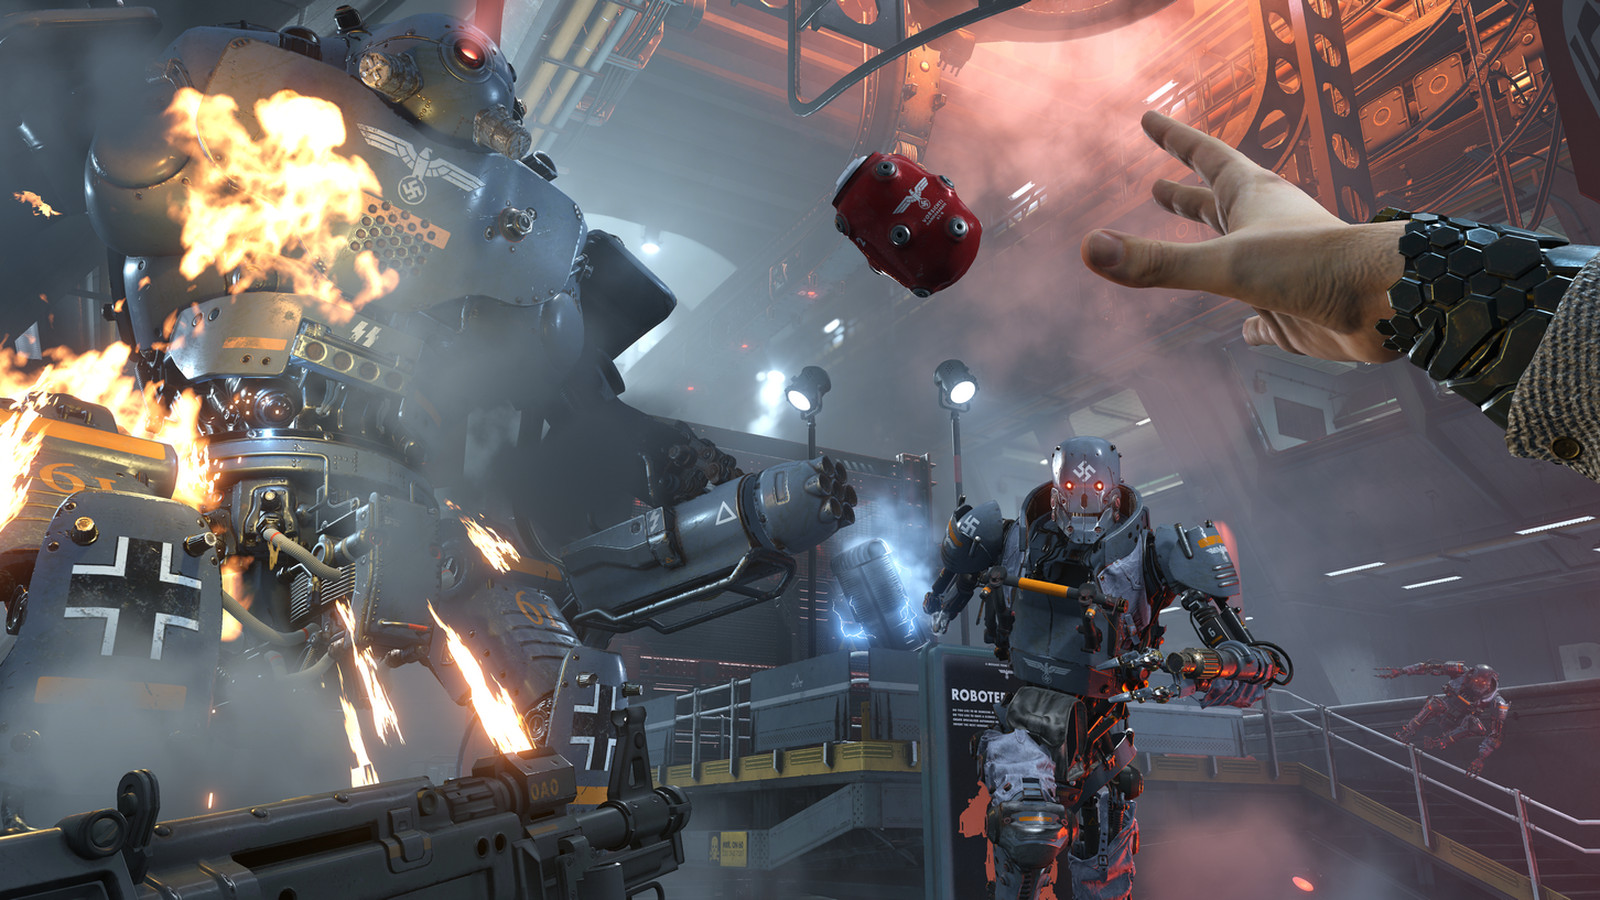 Wolfenstein 2 Xbox One X Ps4 Pro Pc Showdown Microsoft 360 Elite Dissected Layout Changes Revealed With Anything Up To A 225x Increase In Resolution Powers Past Its Equivalent And Compares Fairly Well Against